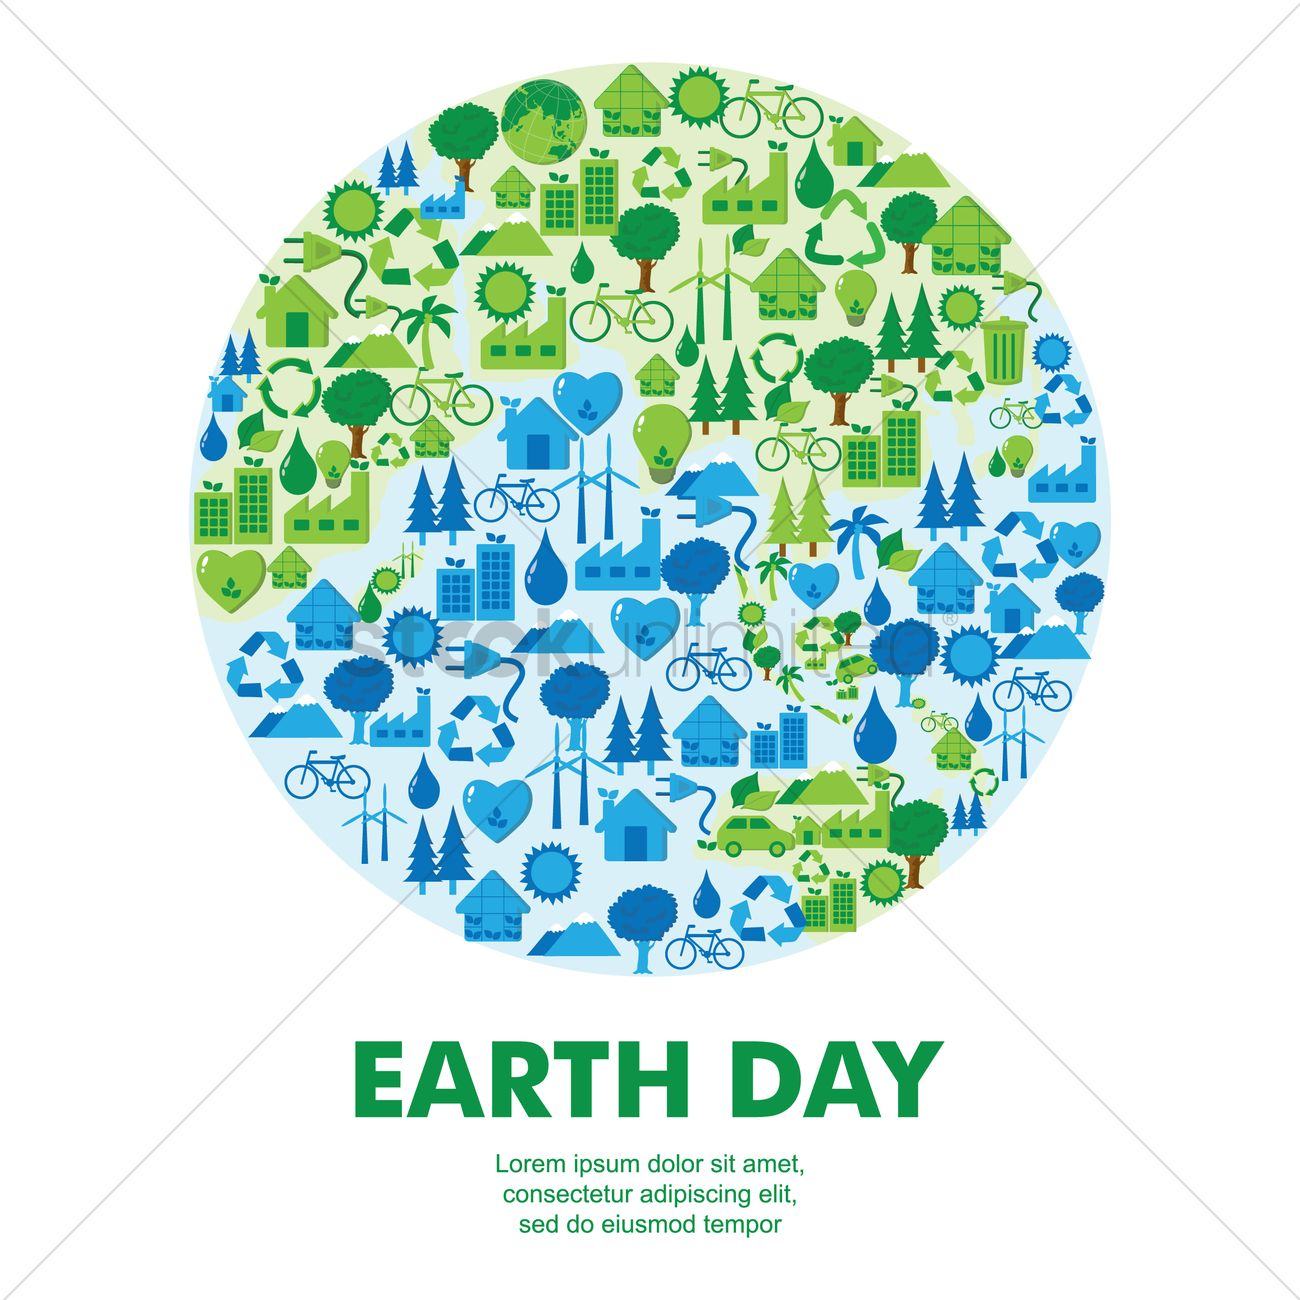 Earth day icon concepts vector image 1276707 stockunlimited earth day icon concepts vector graphic buycottarizona